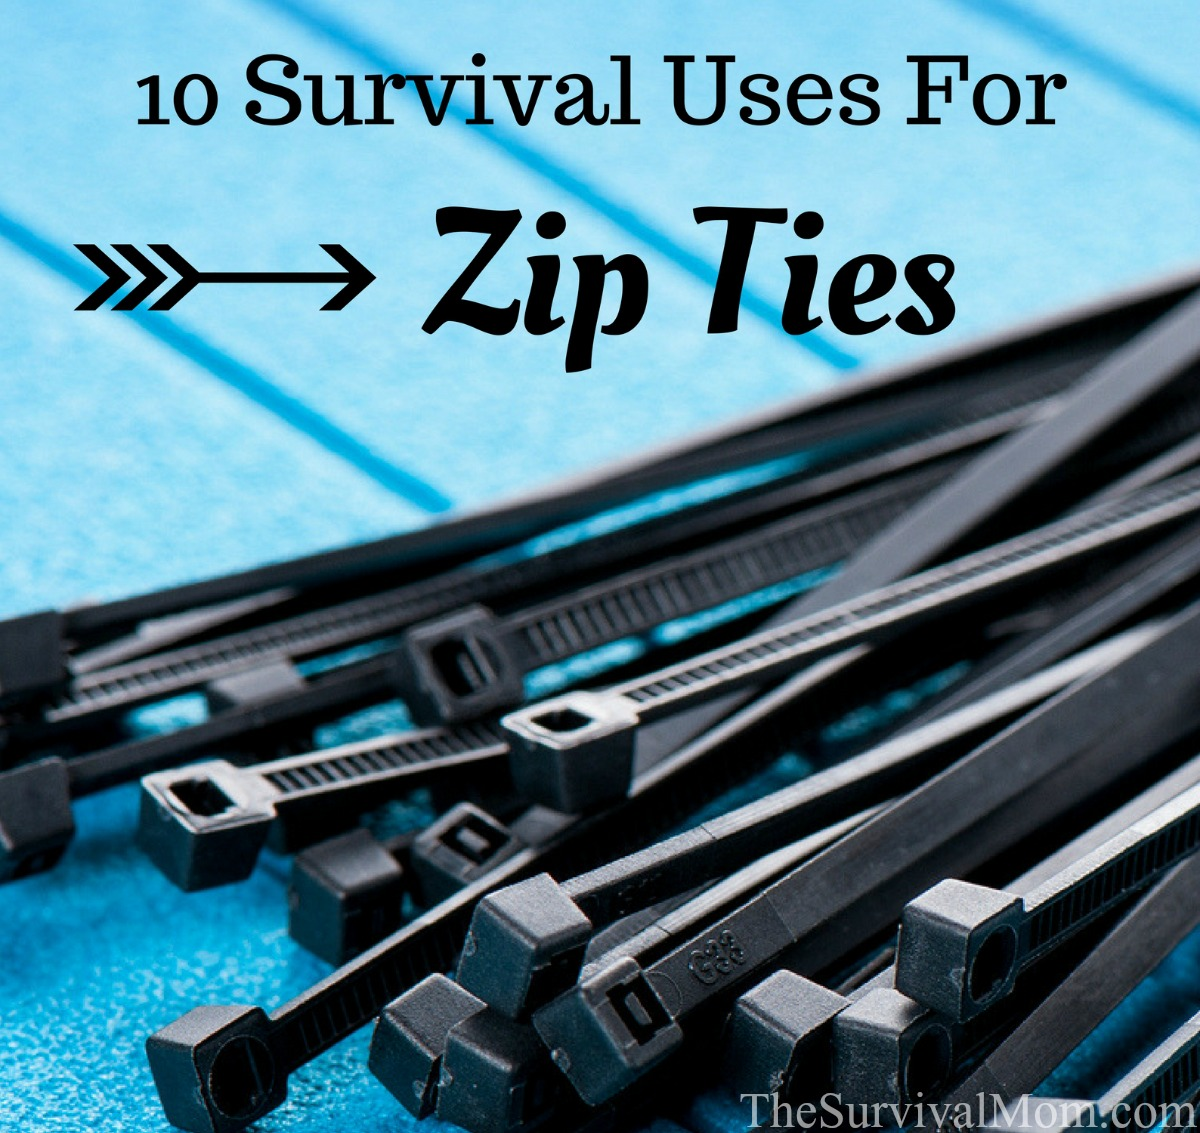 10 Survival Uses For Zip Ties via The Survival Mom